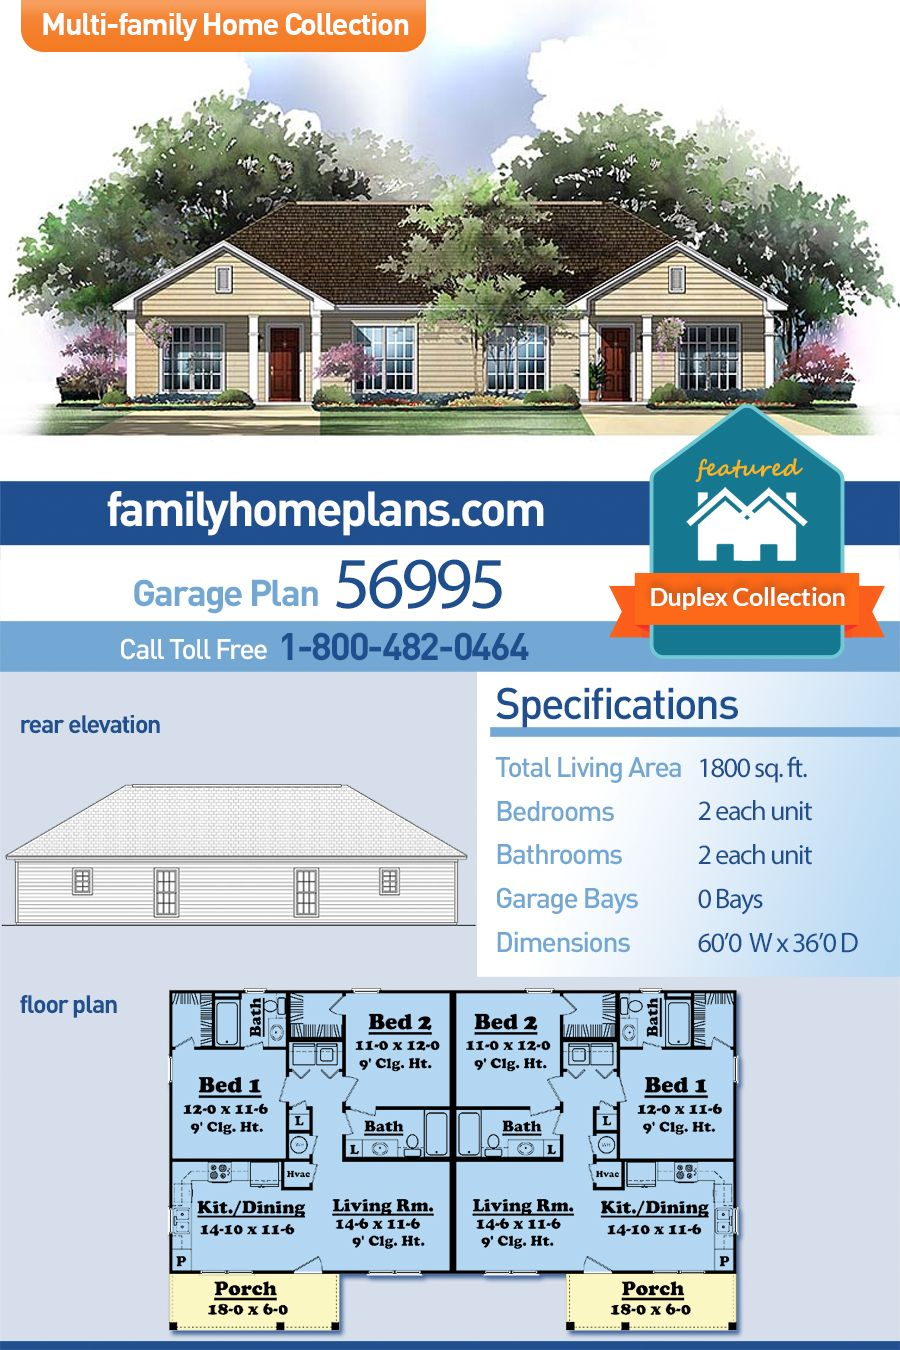 Ranch Style Multi Family Plan 56995 With 4 Bed 4 Bath Duplex House Plans Family House Plans Duplex House